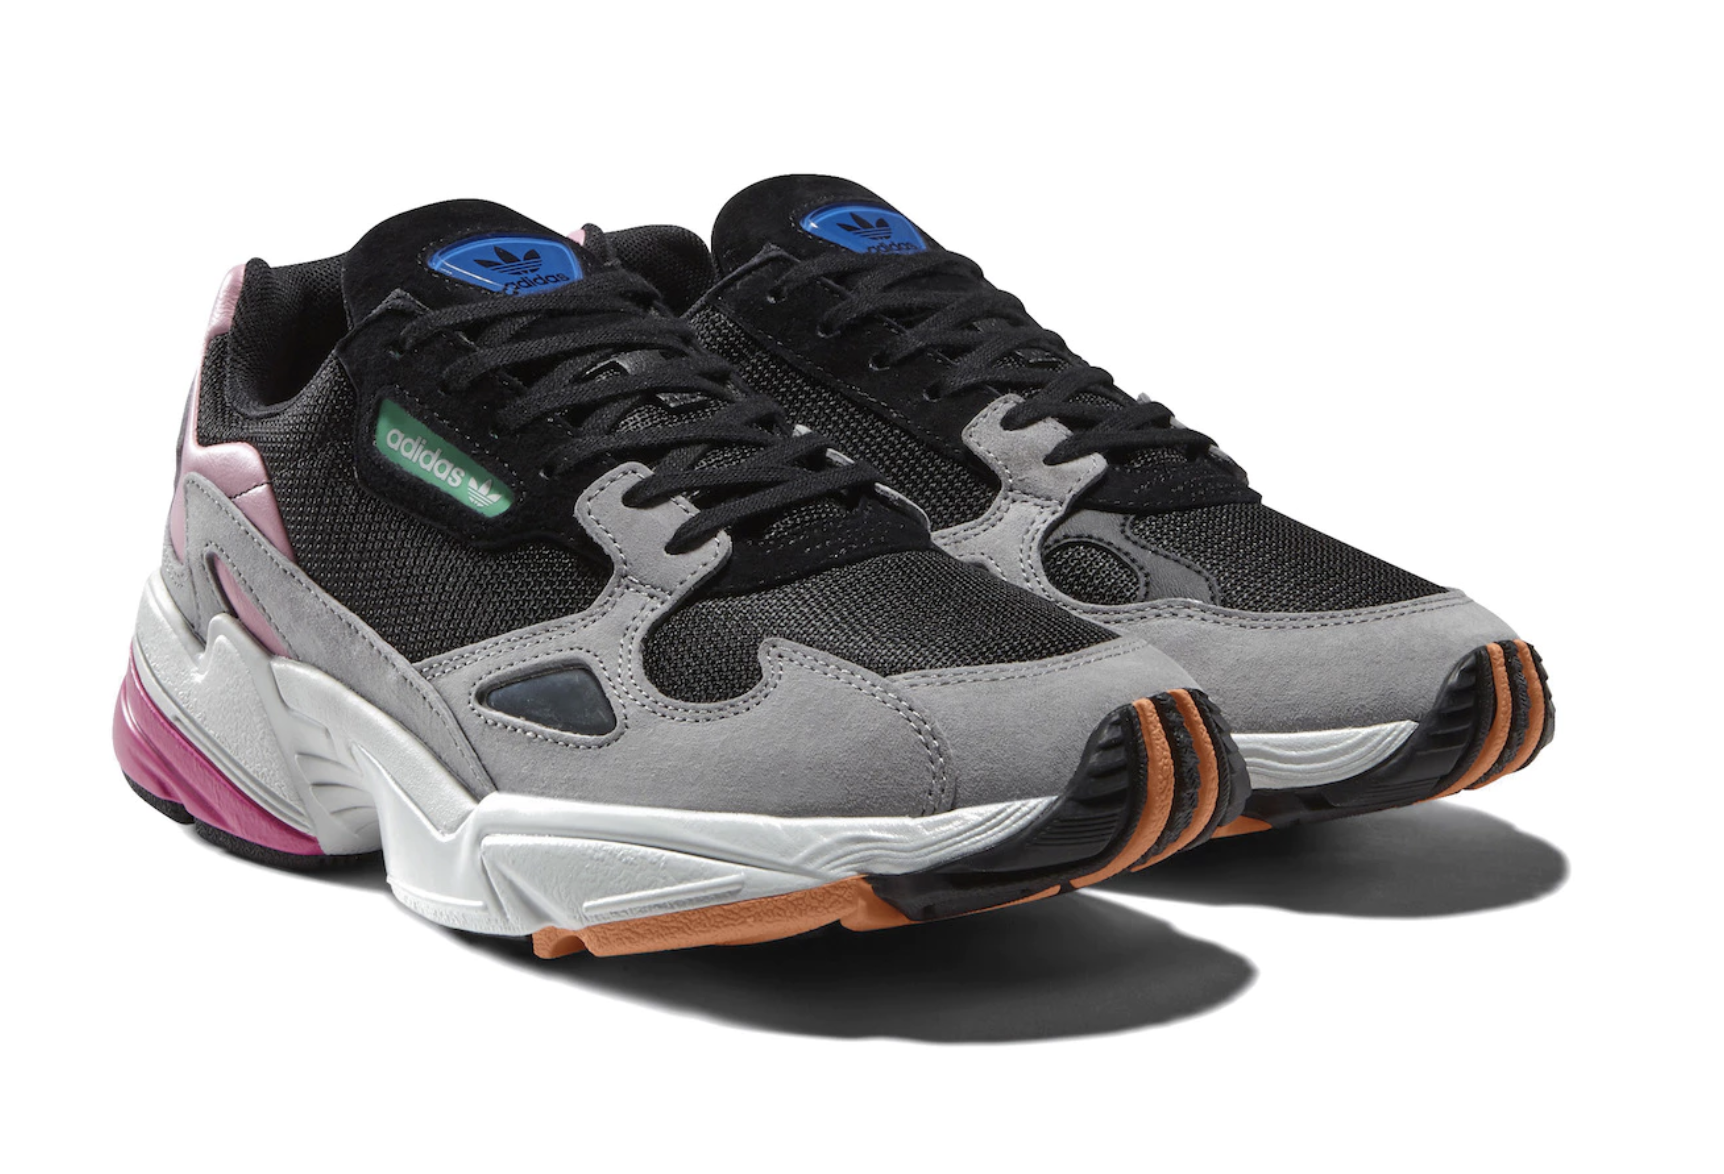 6db661c7684 ... The adidas Falcon, Another Chunky Sneaker To Add To The Shopping List